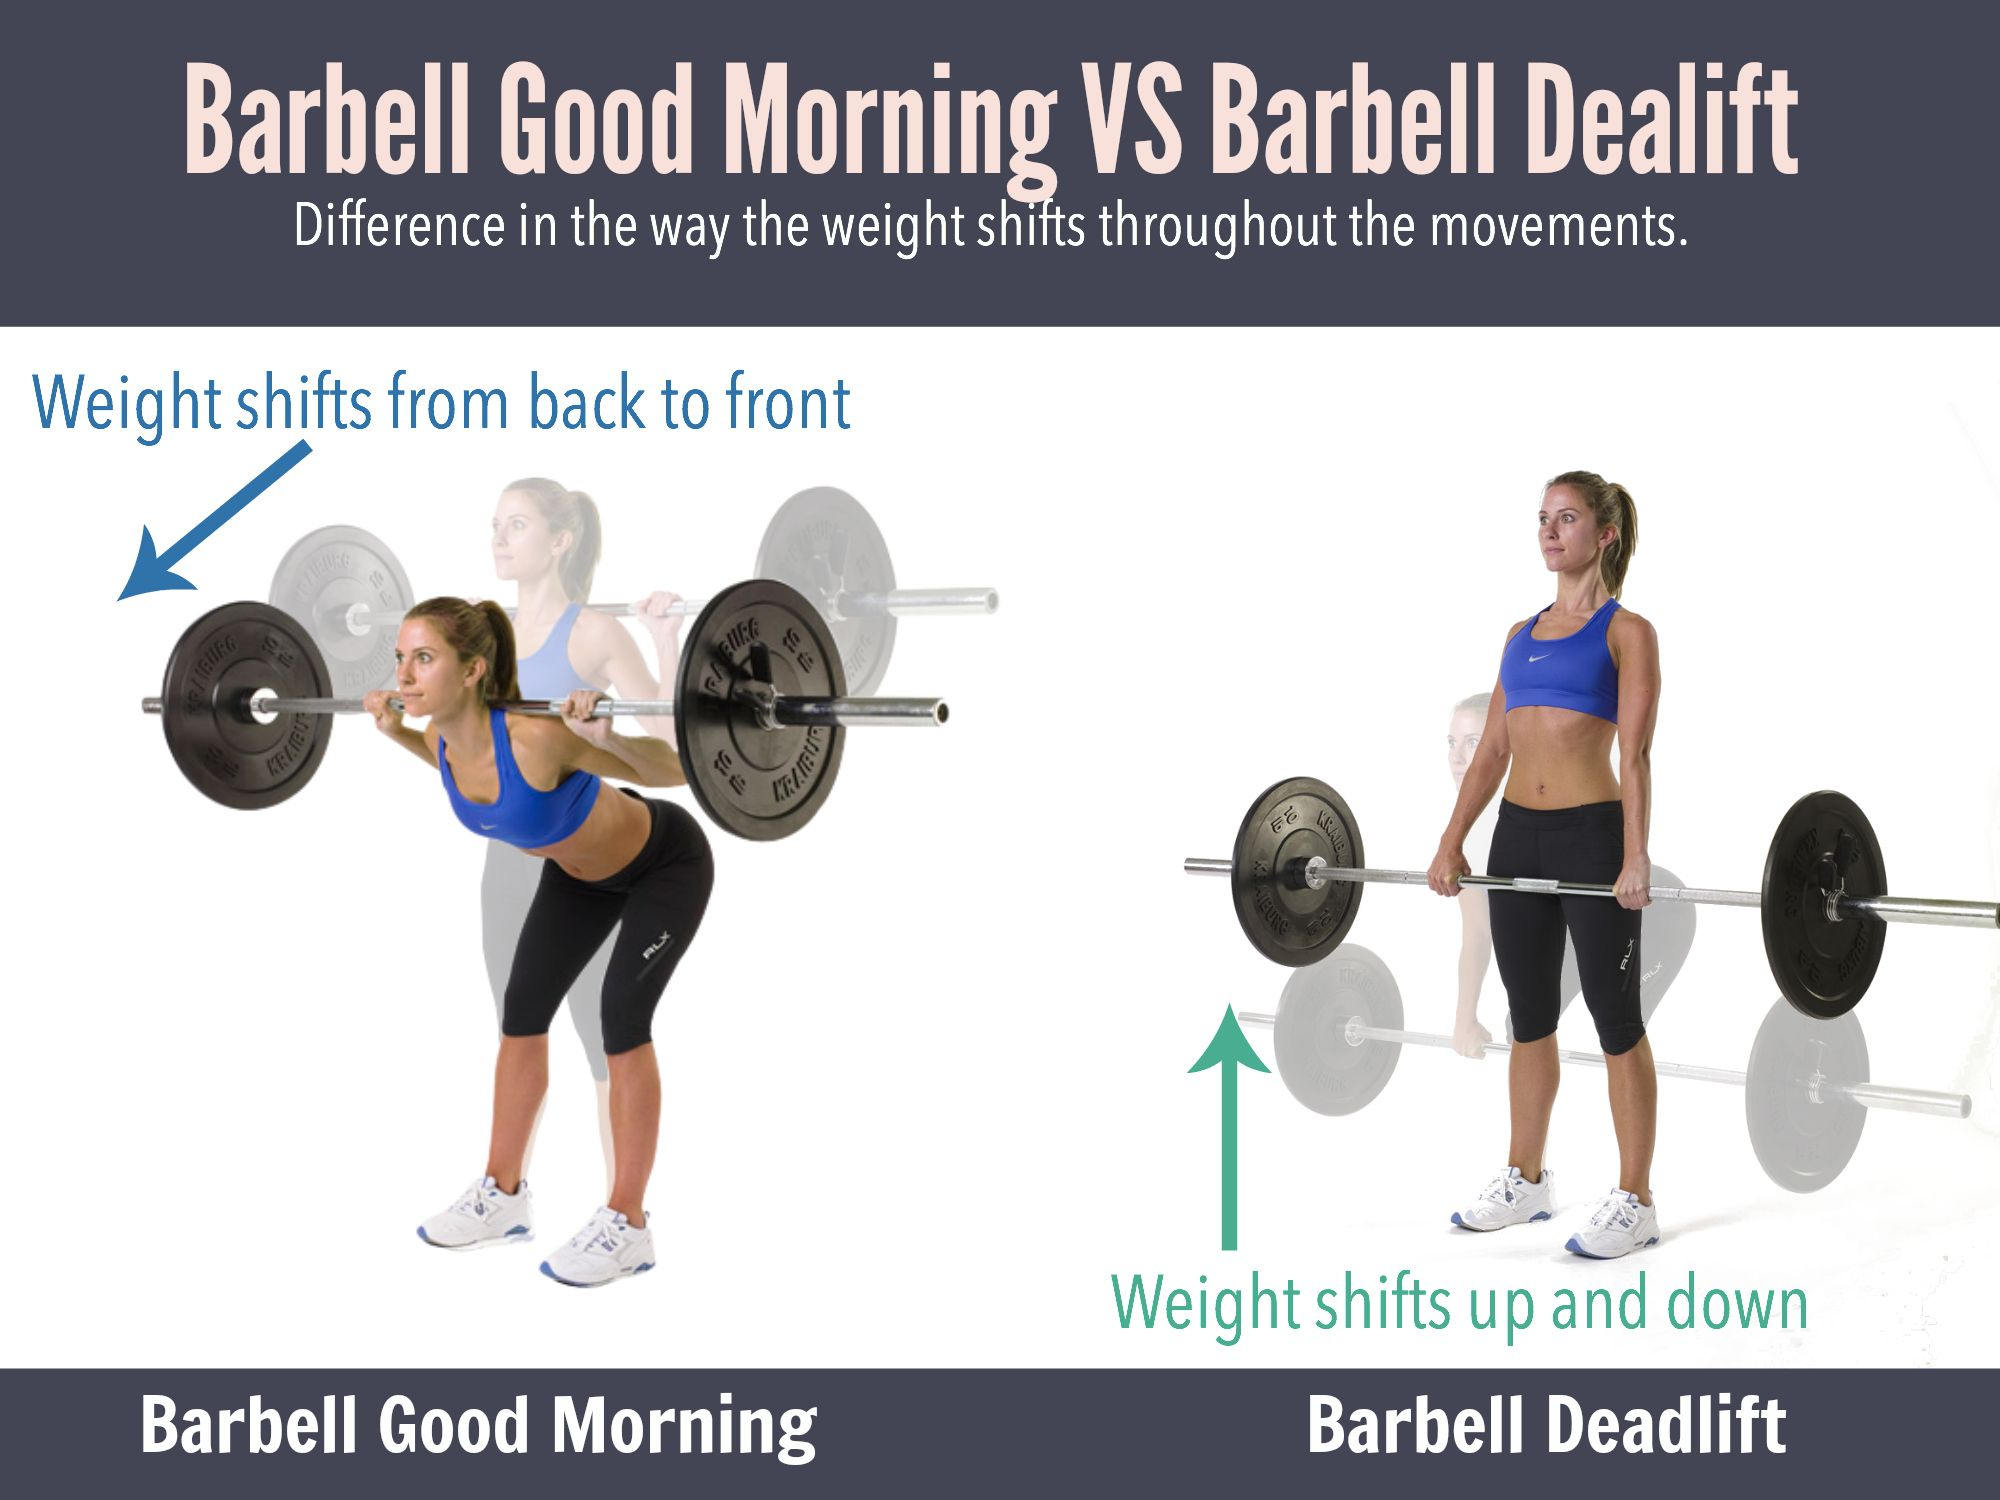 Deadlift vs good morning how are they different barbell barbell deadlifts or barbell good morning which works your glutes and hamstrings more difference falaconquin